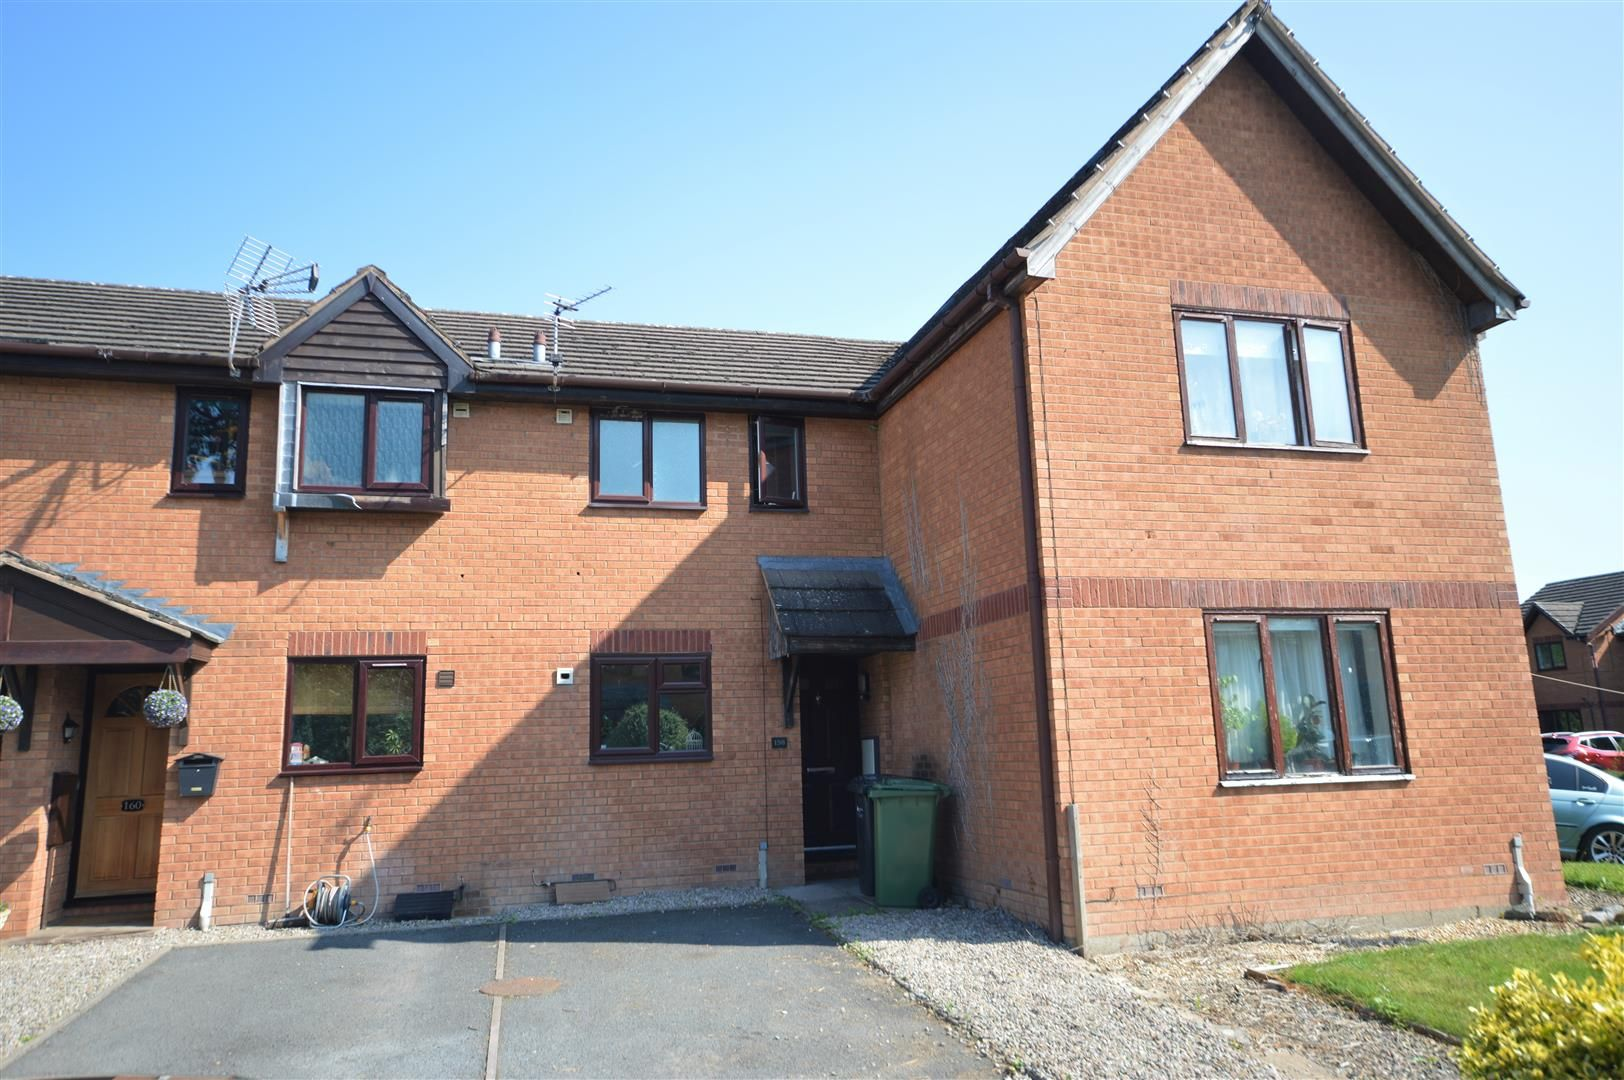 1 bed terraced for sale in Leominster, HR6